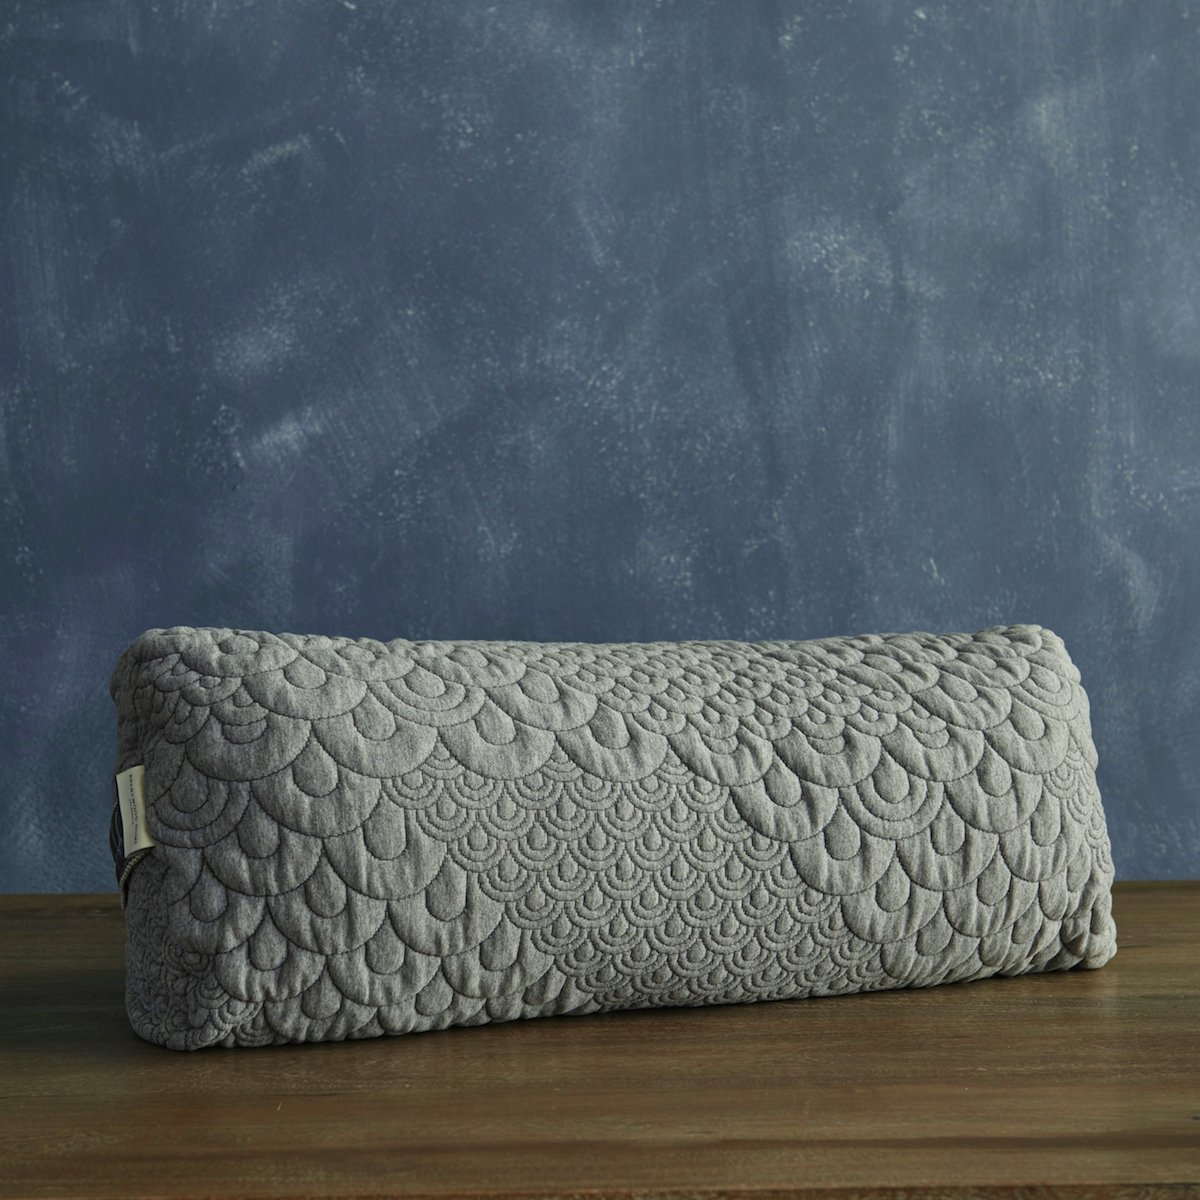 Brentwood Home Crystal Cove Yoga Bolster, Buckwheat Fill Rectangular Support Pillow, Made in California by Brentwood Home